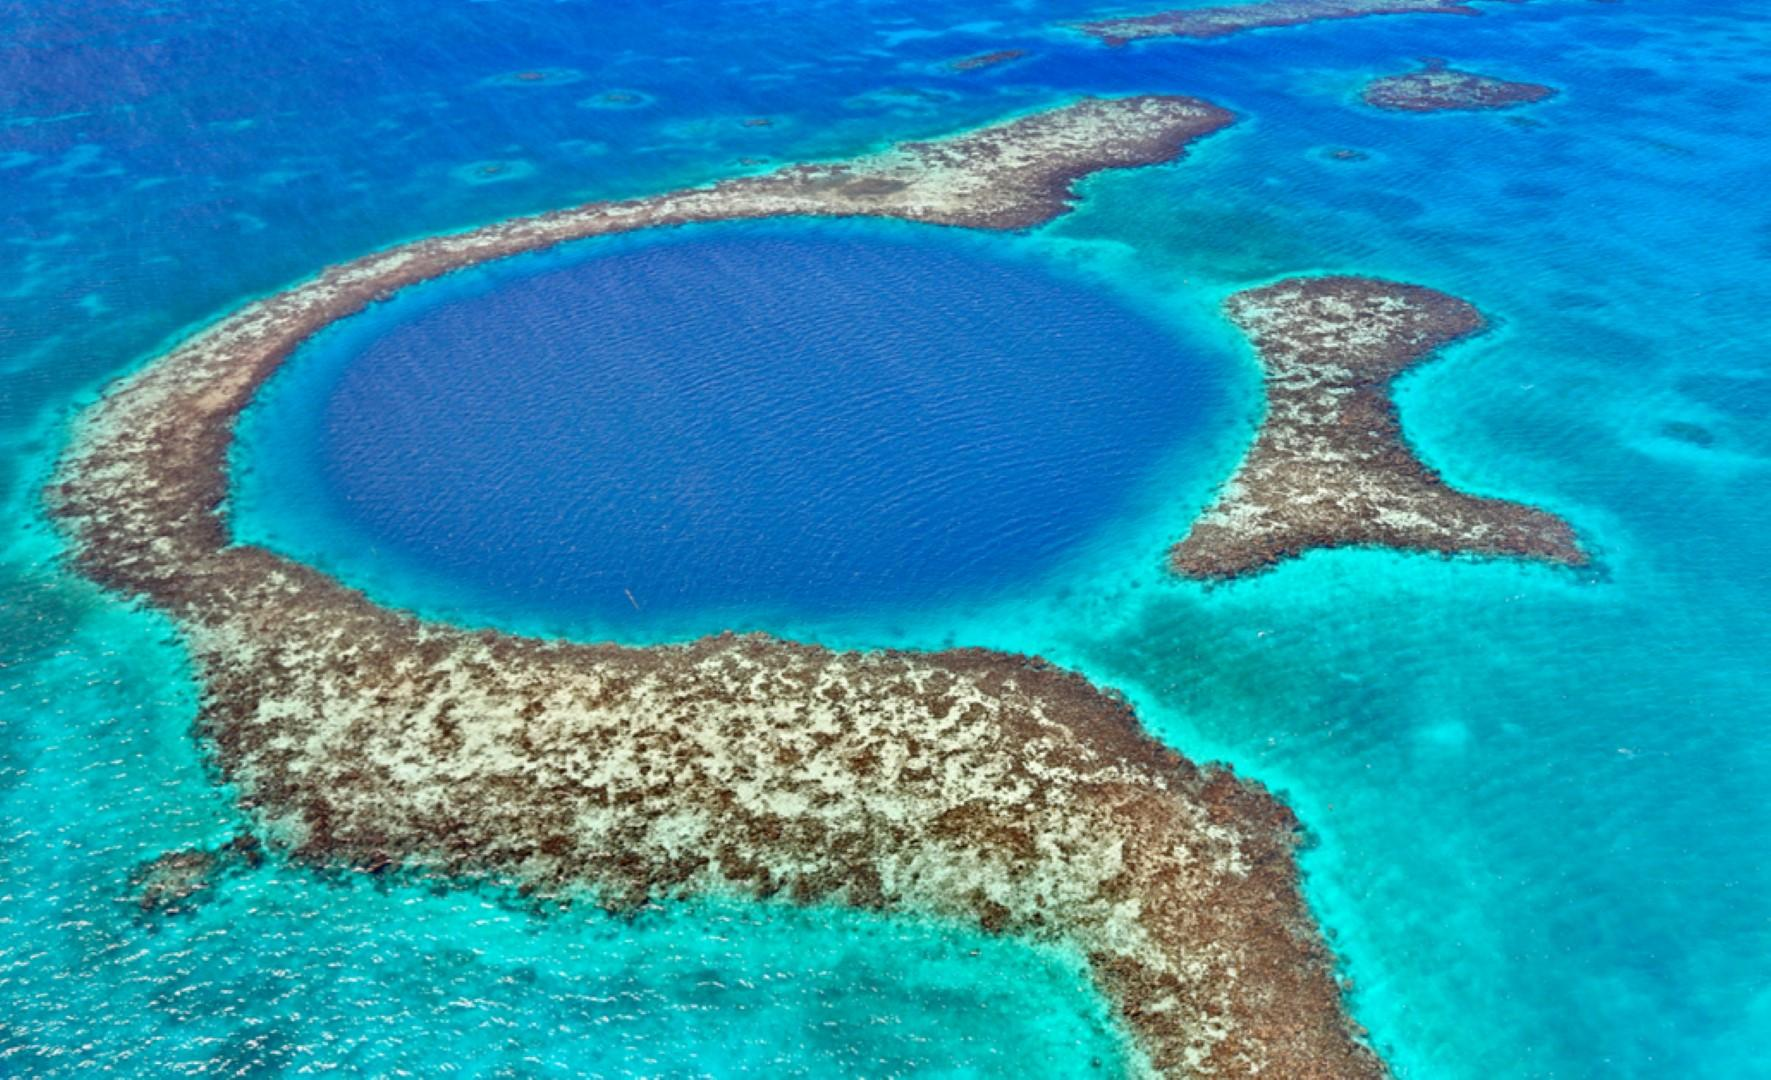 The Great Blue Hole: profondo blu